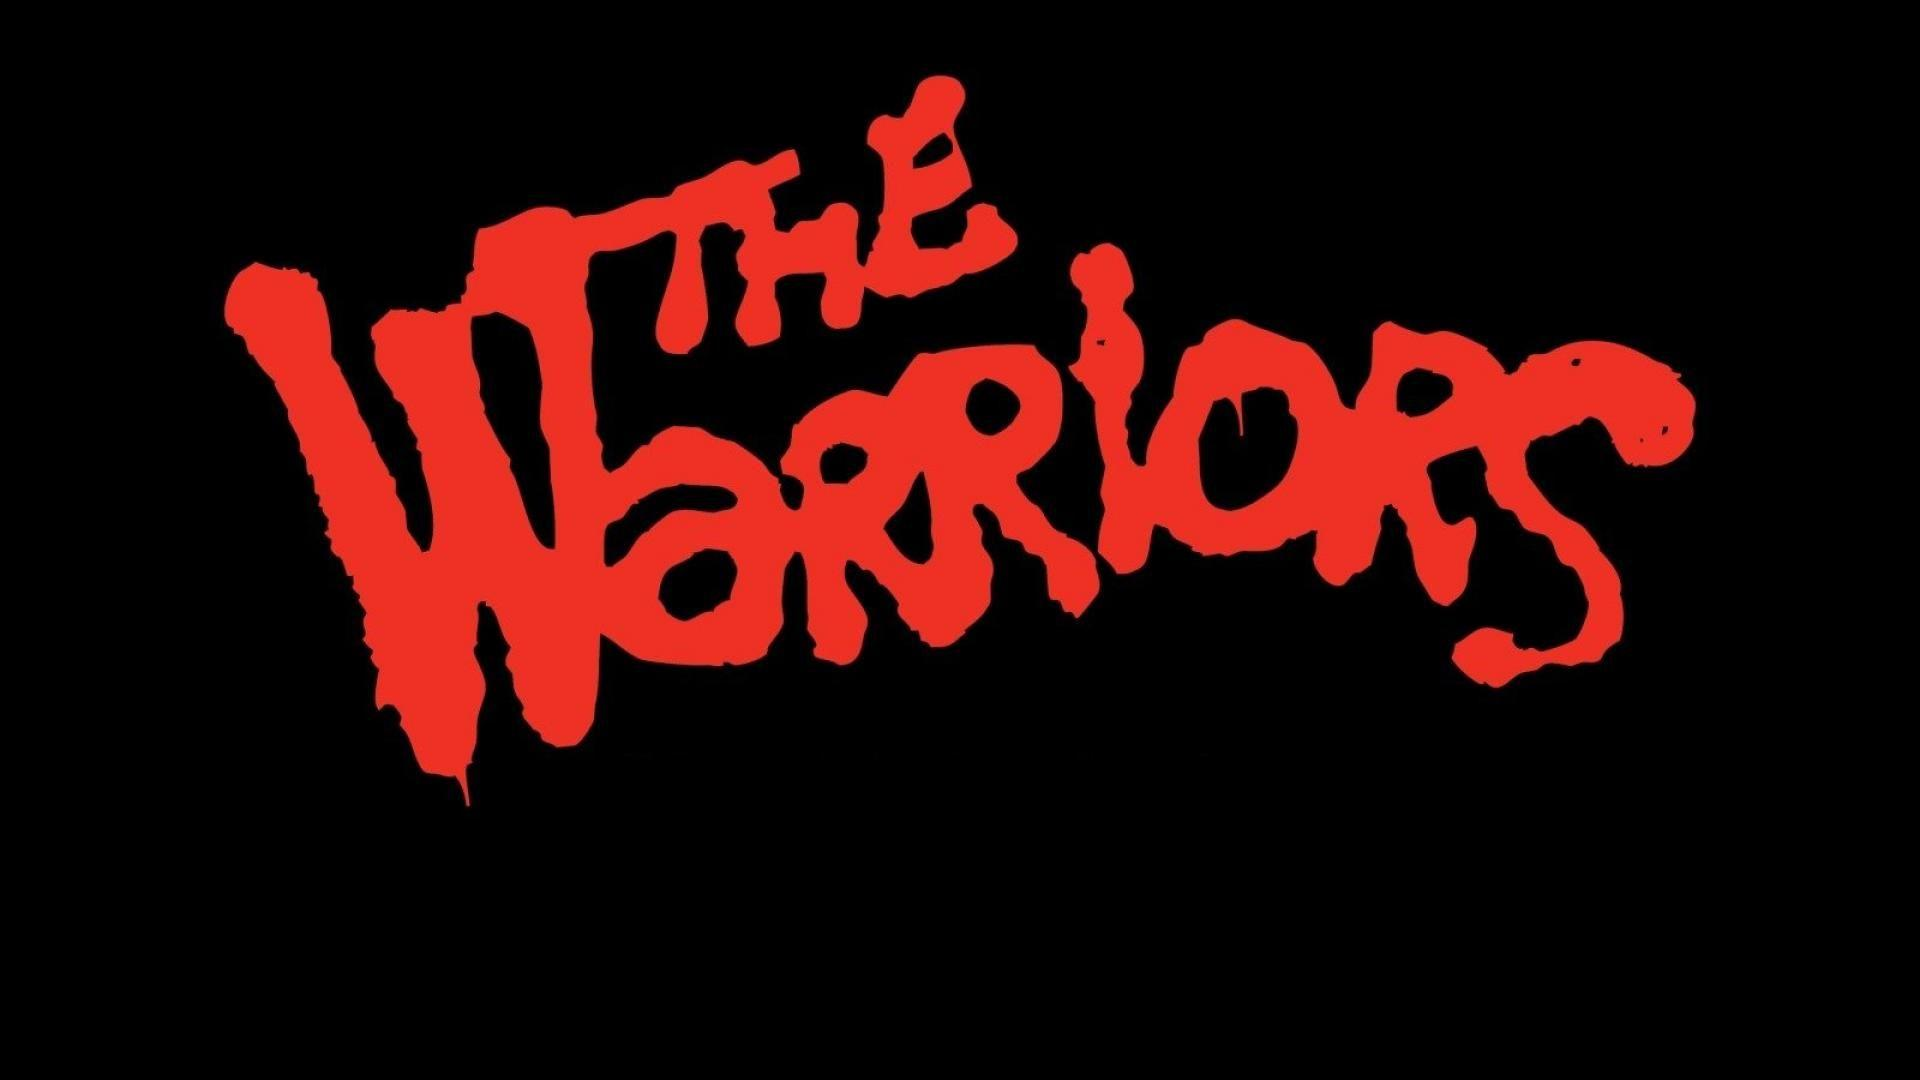 the warriors wallpapers wallpaper cave